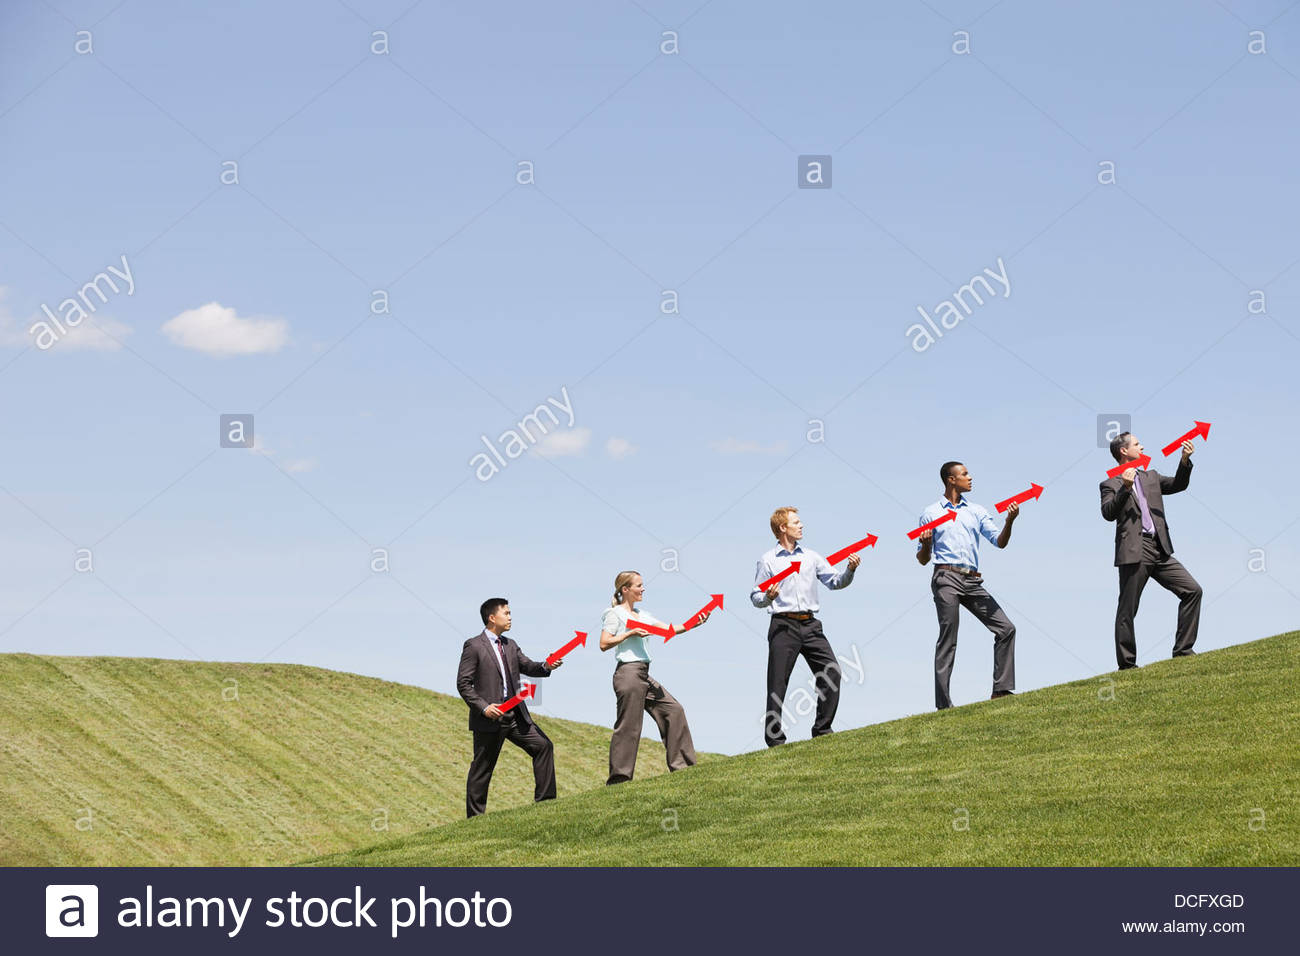 Group of businesspeople implying success - Stock Image